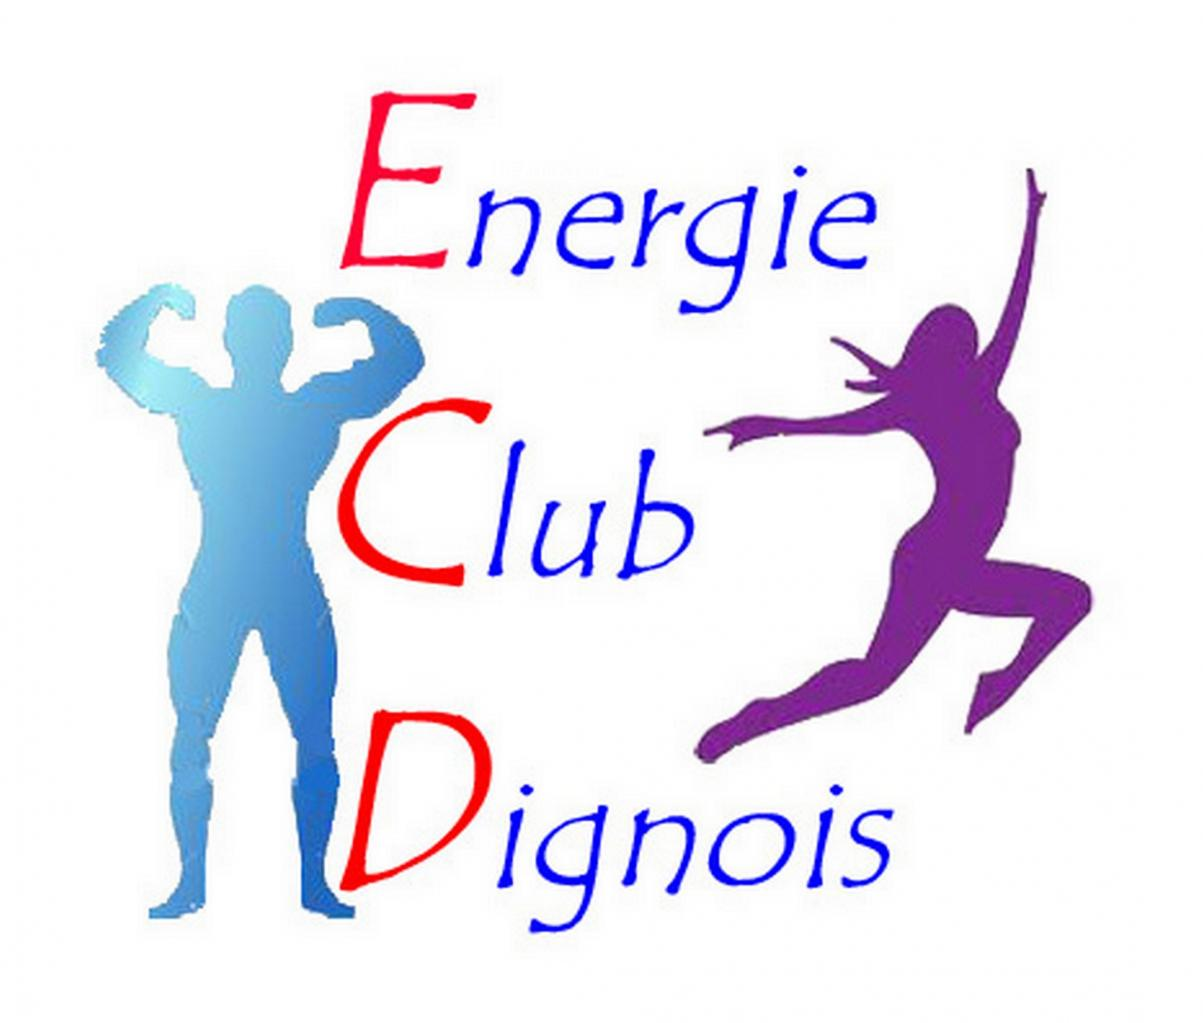 ENERGIE CLUB DIGNOIS